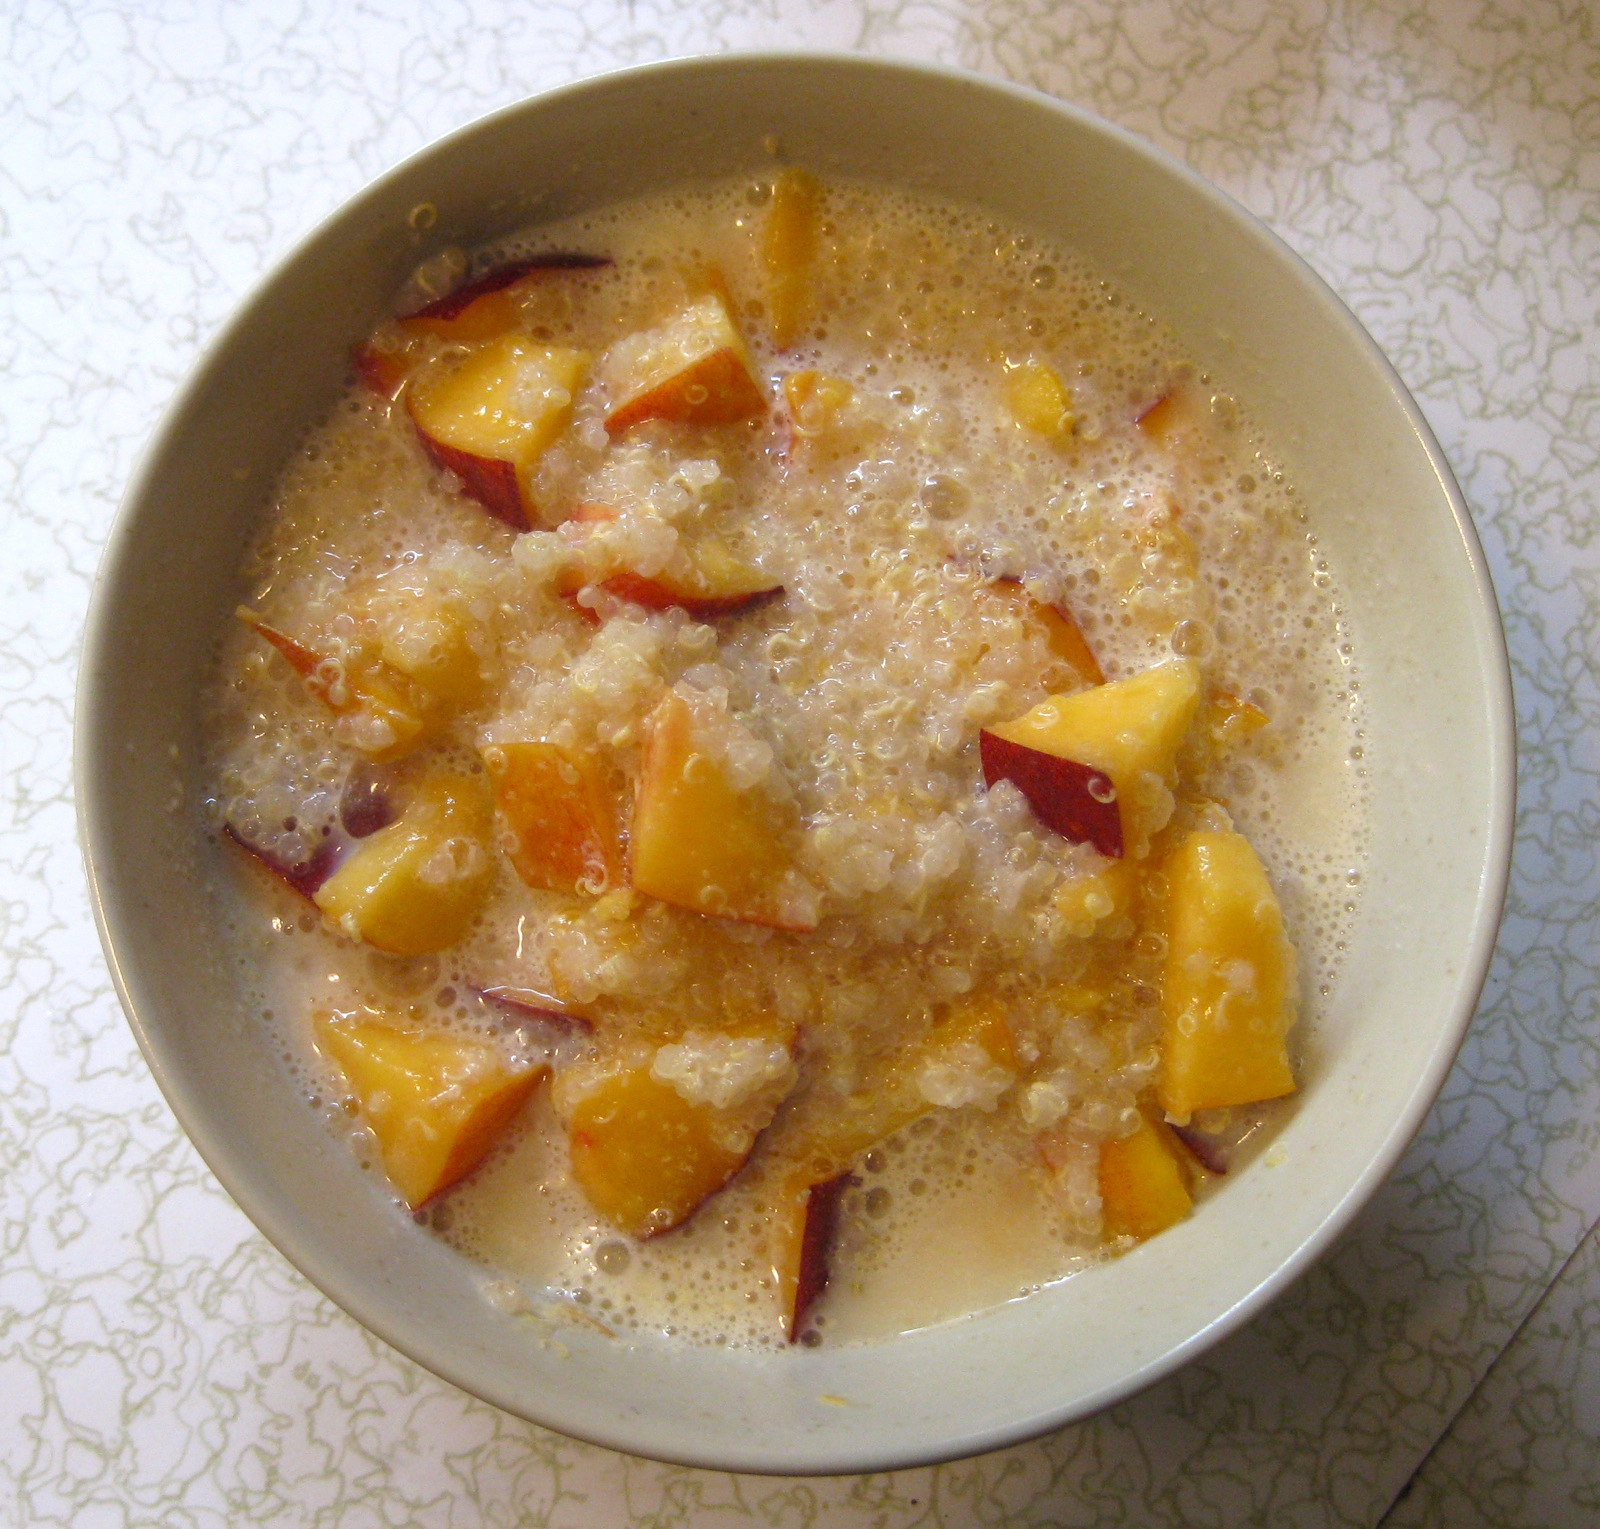 Peach Quinoa Porridge